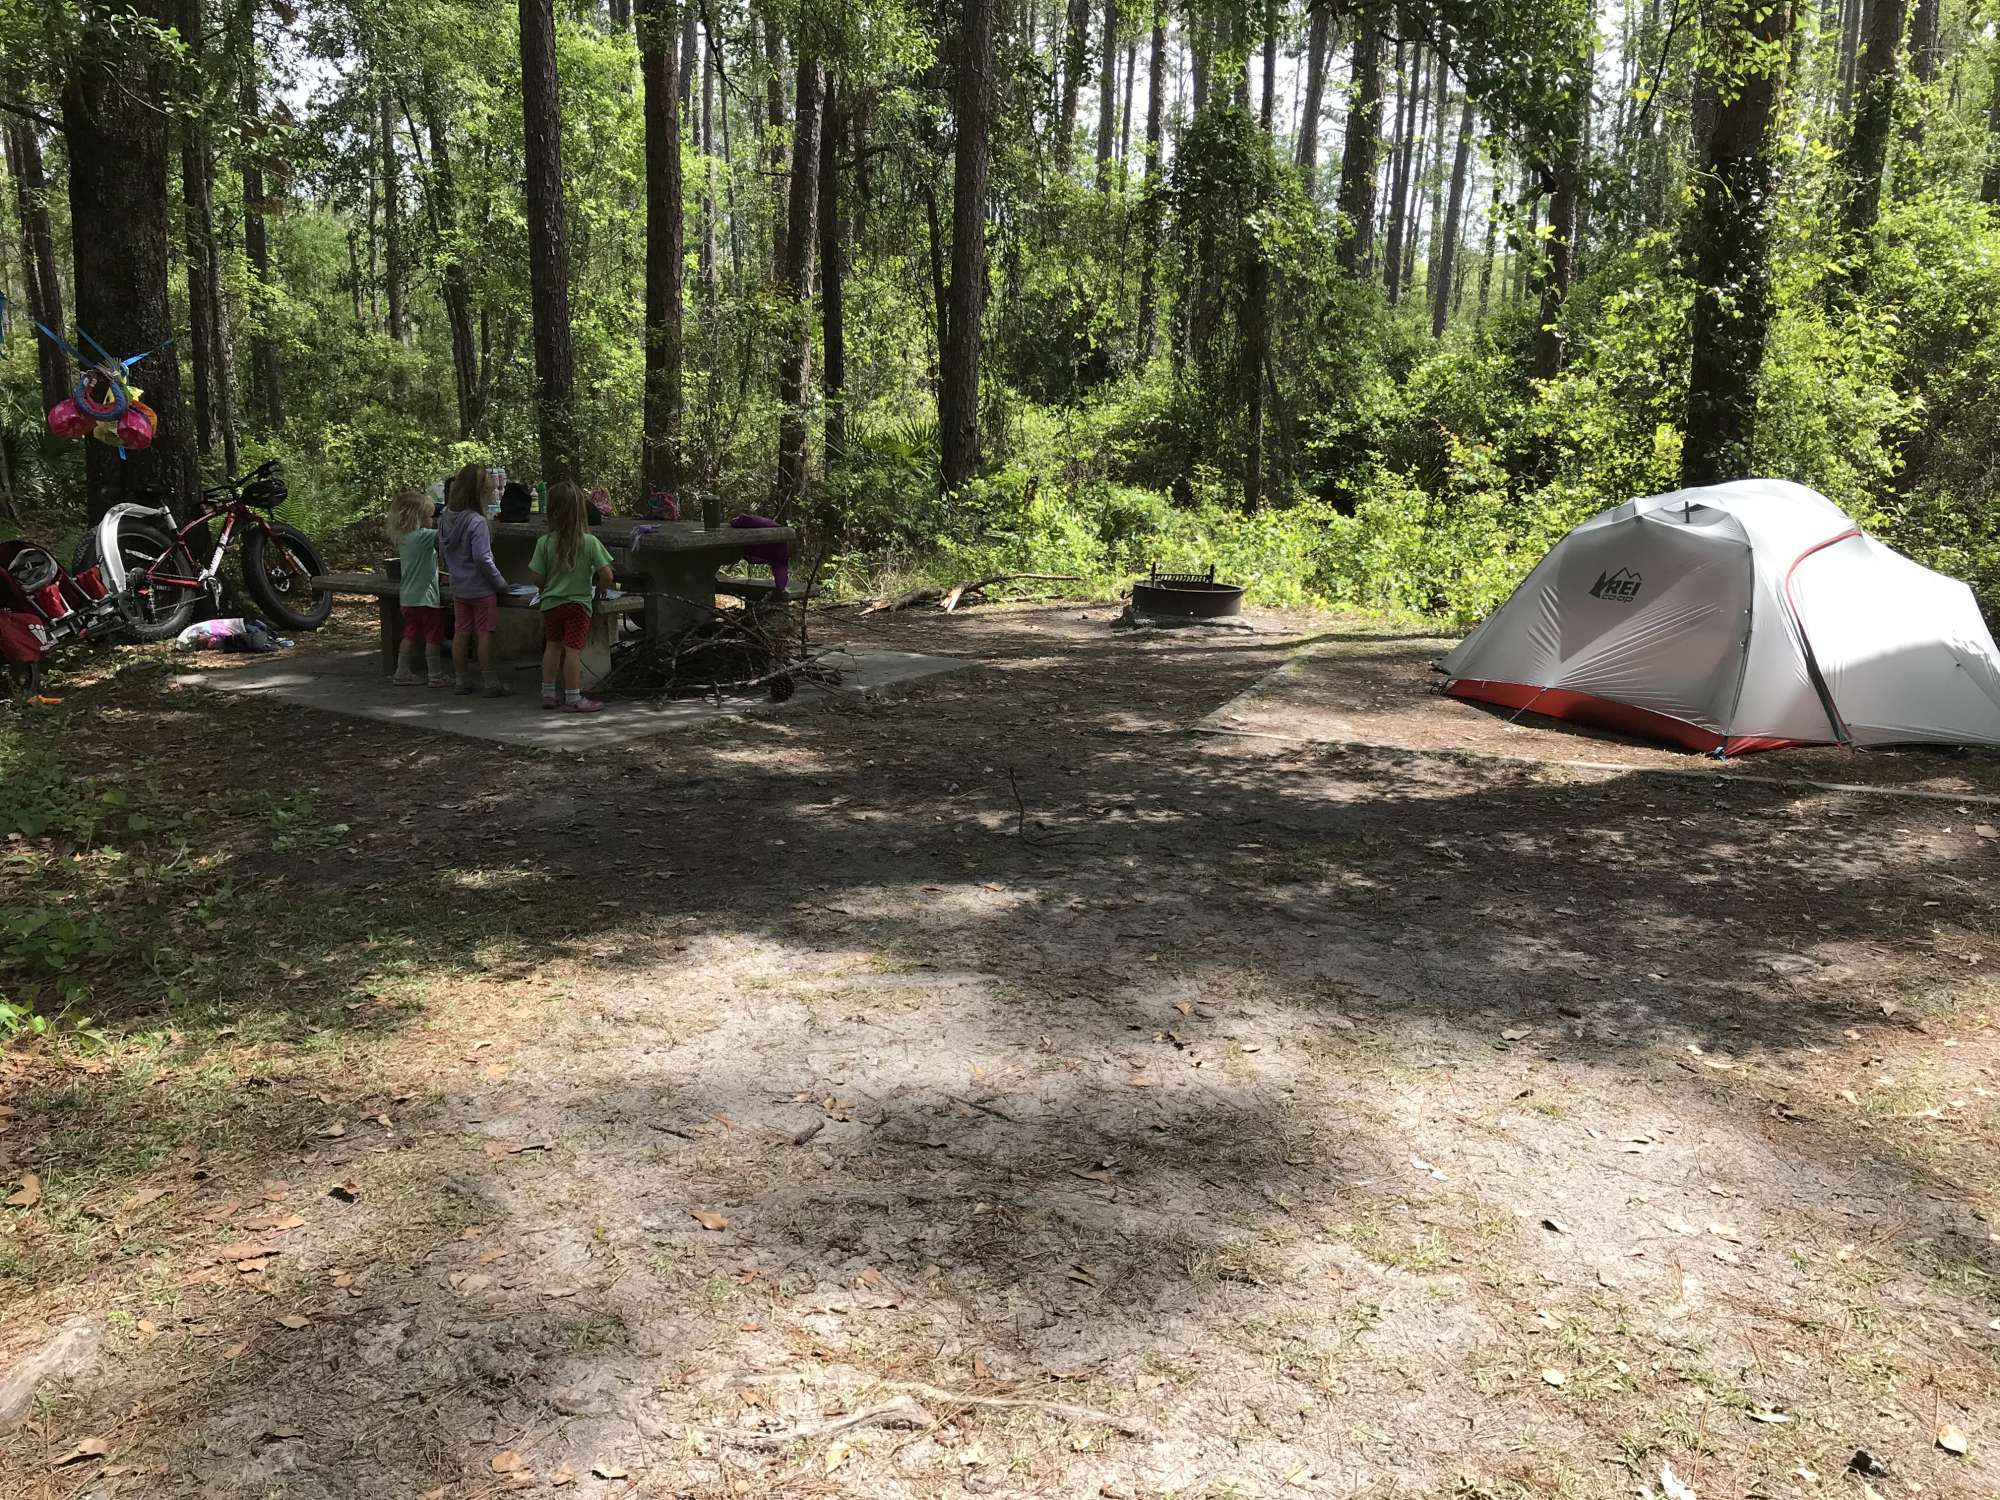 We lived through several big thunderstorms camping during our week at Osceola!